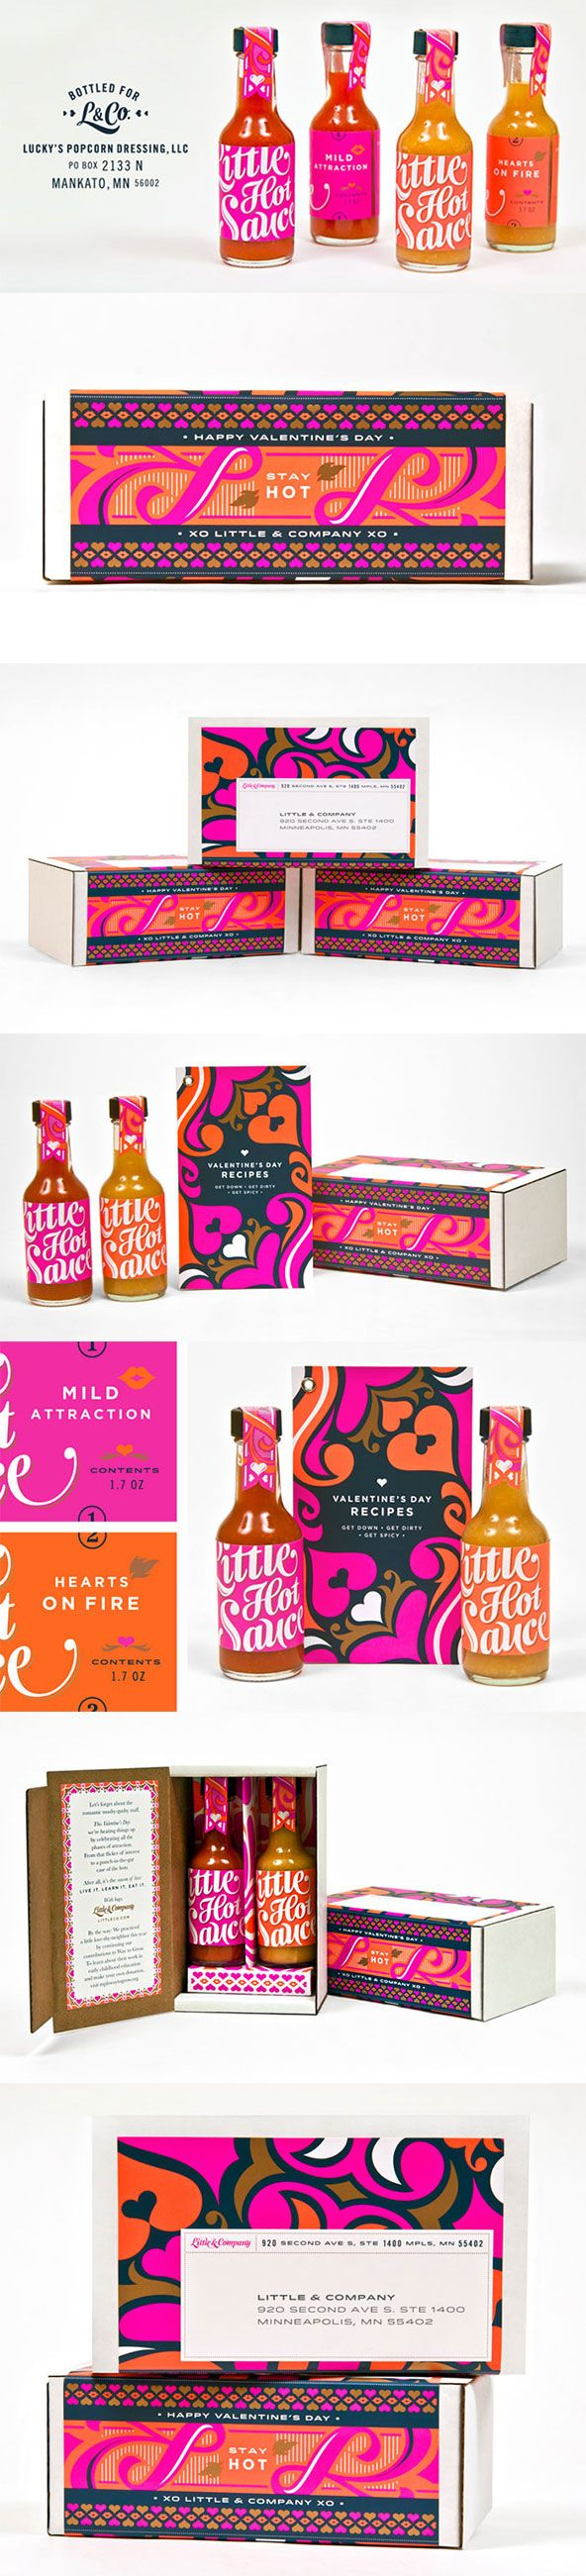 Now that packaging definitely adds some spice to your hot sauce! https://www.retailpackaging.com/categories/11-gift-boxes #typography #packaging #unique